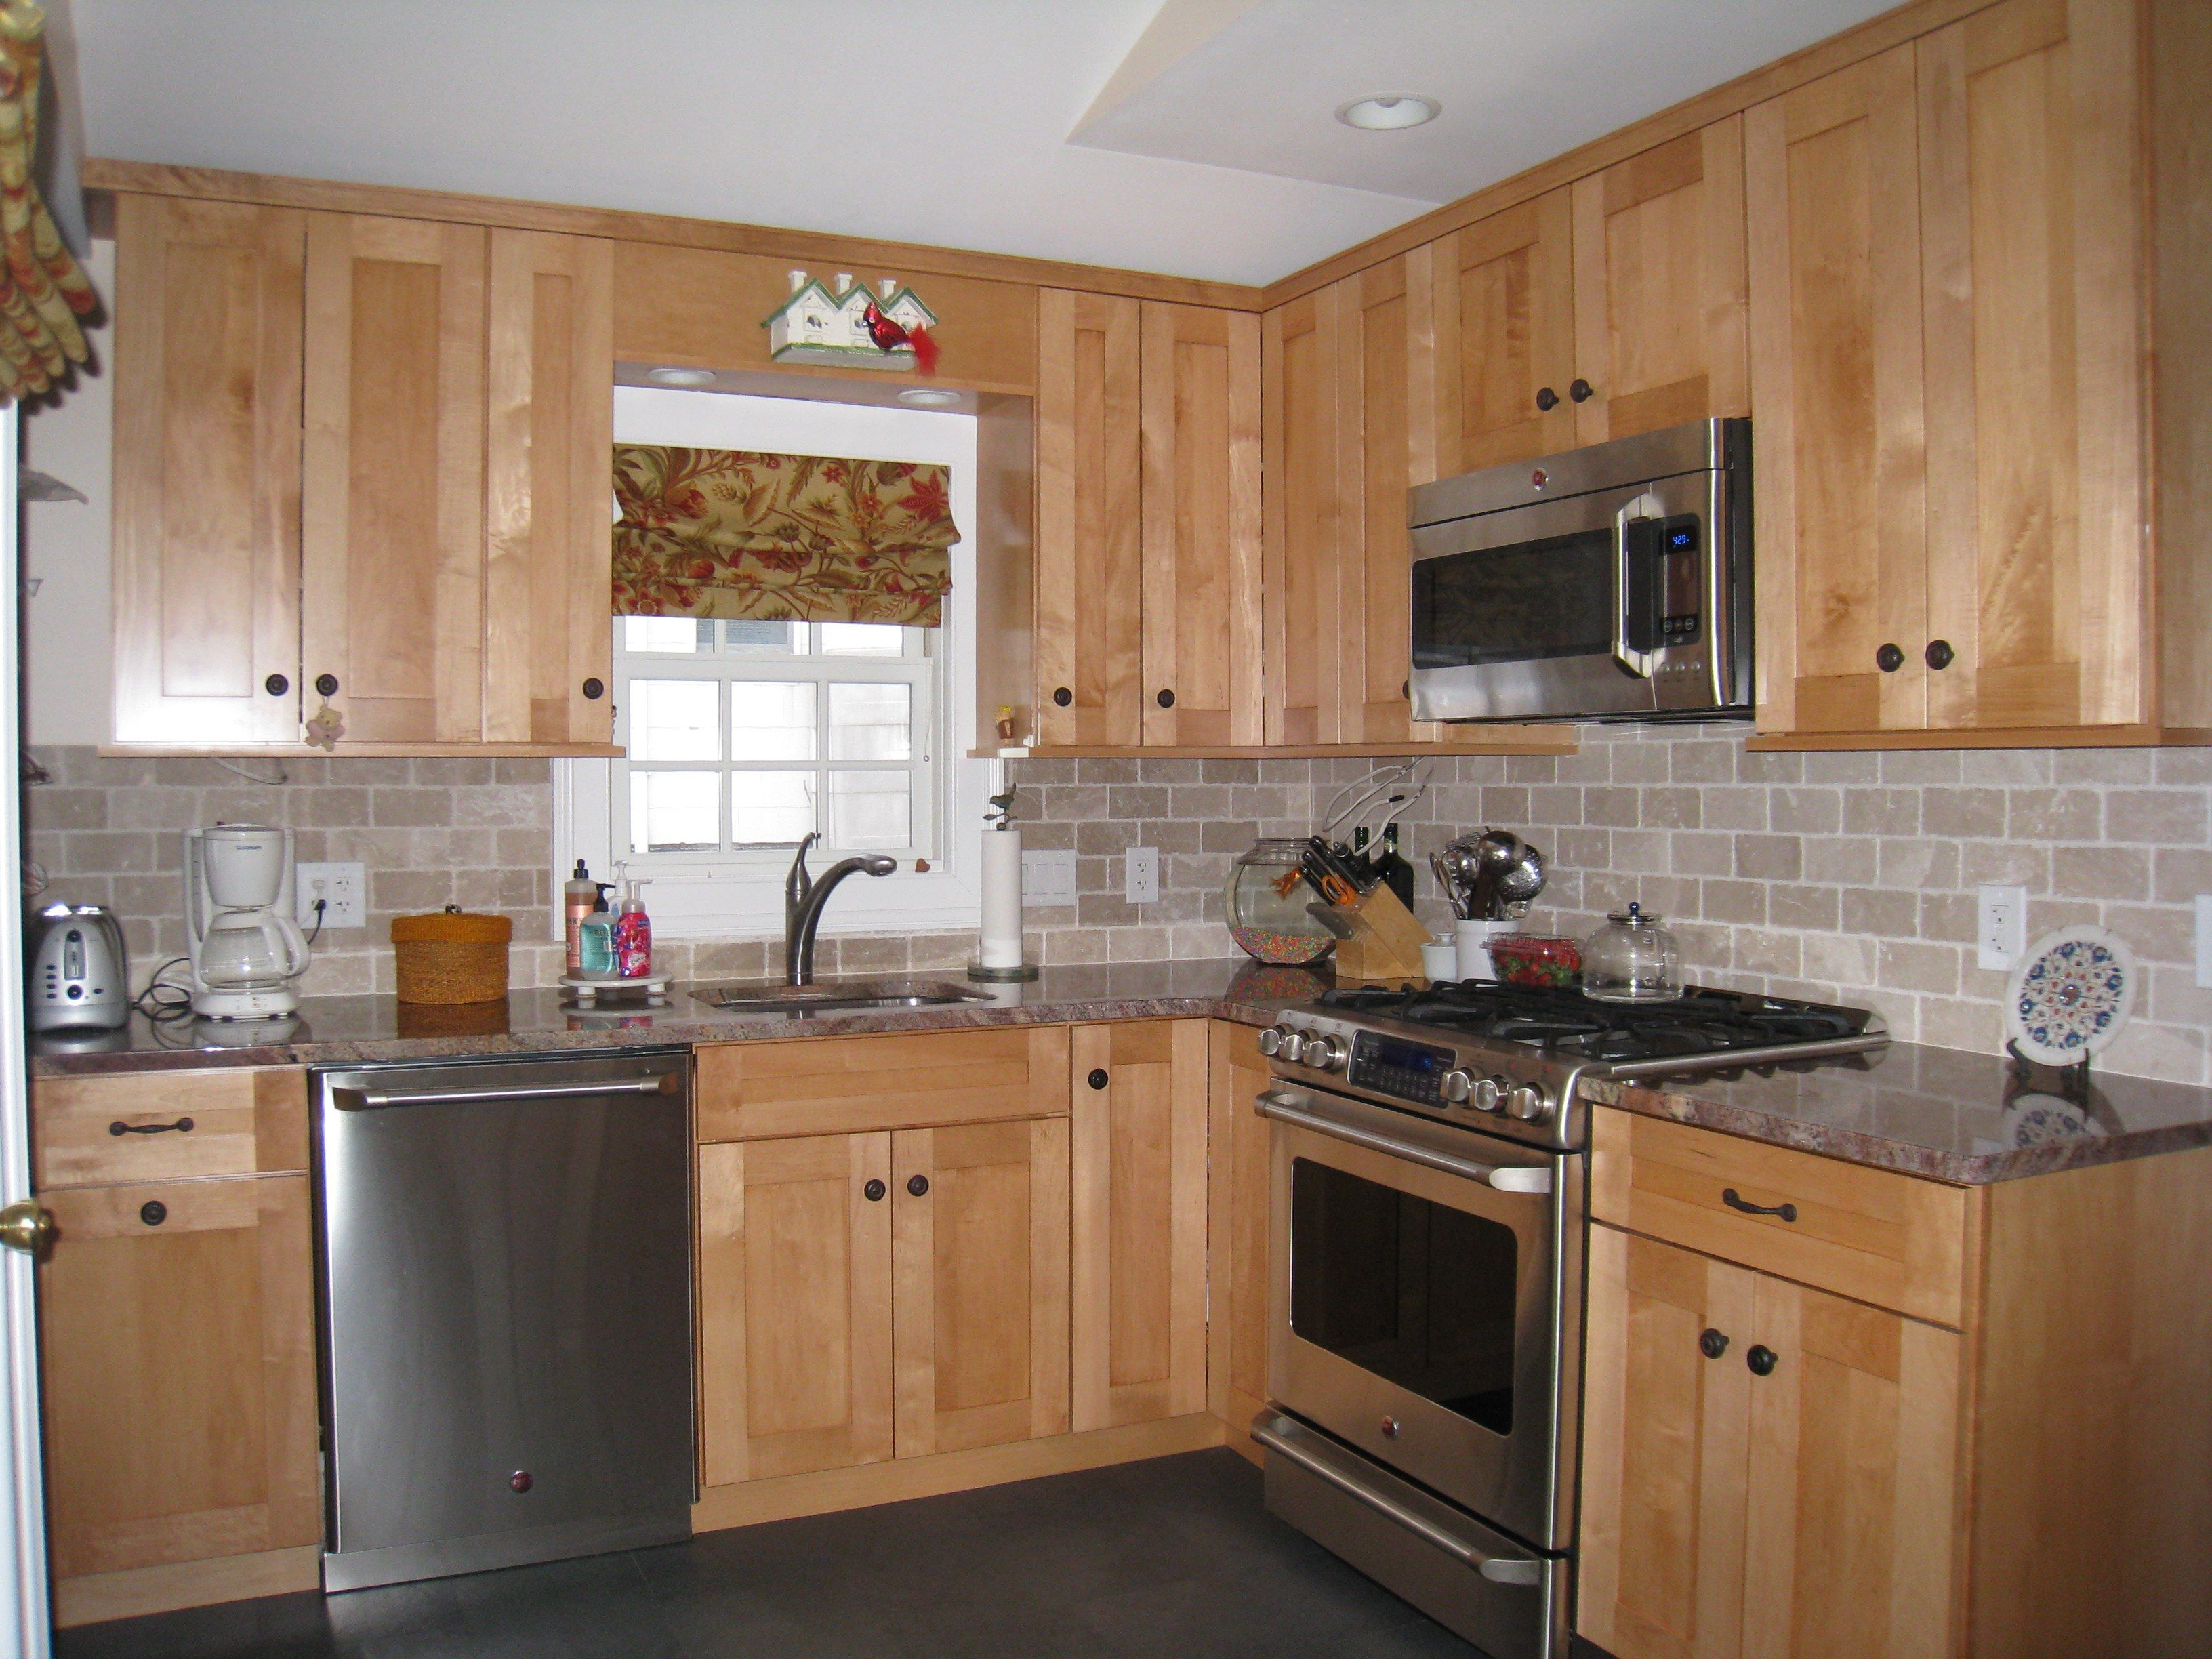 Awesome Maple Shaker Kitchen Cabinets With Shaker Kitchen Cabinets Kitchen Cabinet Accessories Standard Morganallen Designs Maple Kitchen Cabinets Cheap Kitchen Cabinets Used Kitchen Cabinets